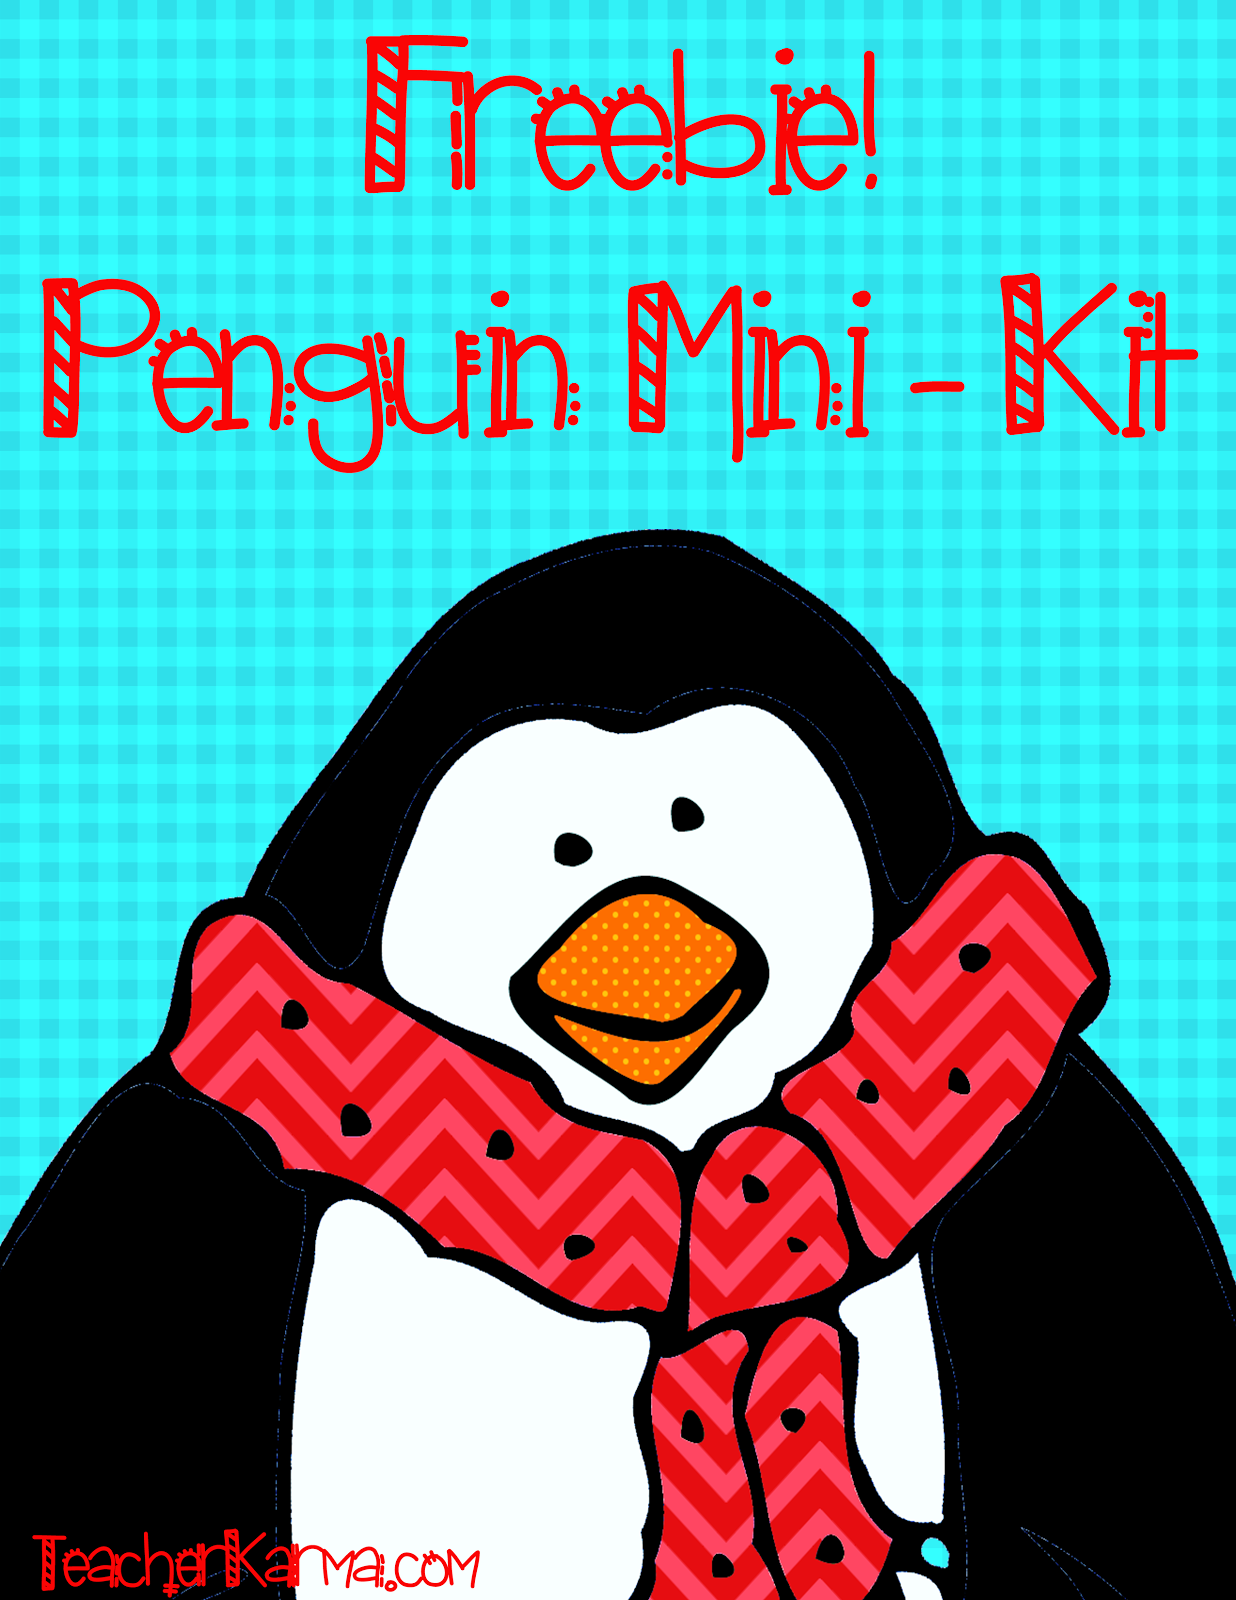 FREE penguin clip art kit to help you celebrate Christmas!  TeacherKarma.com